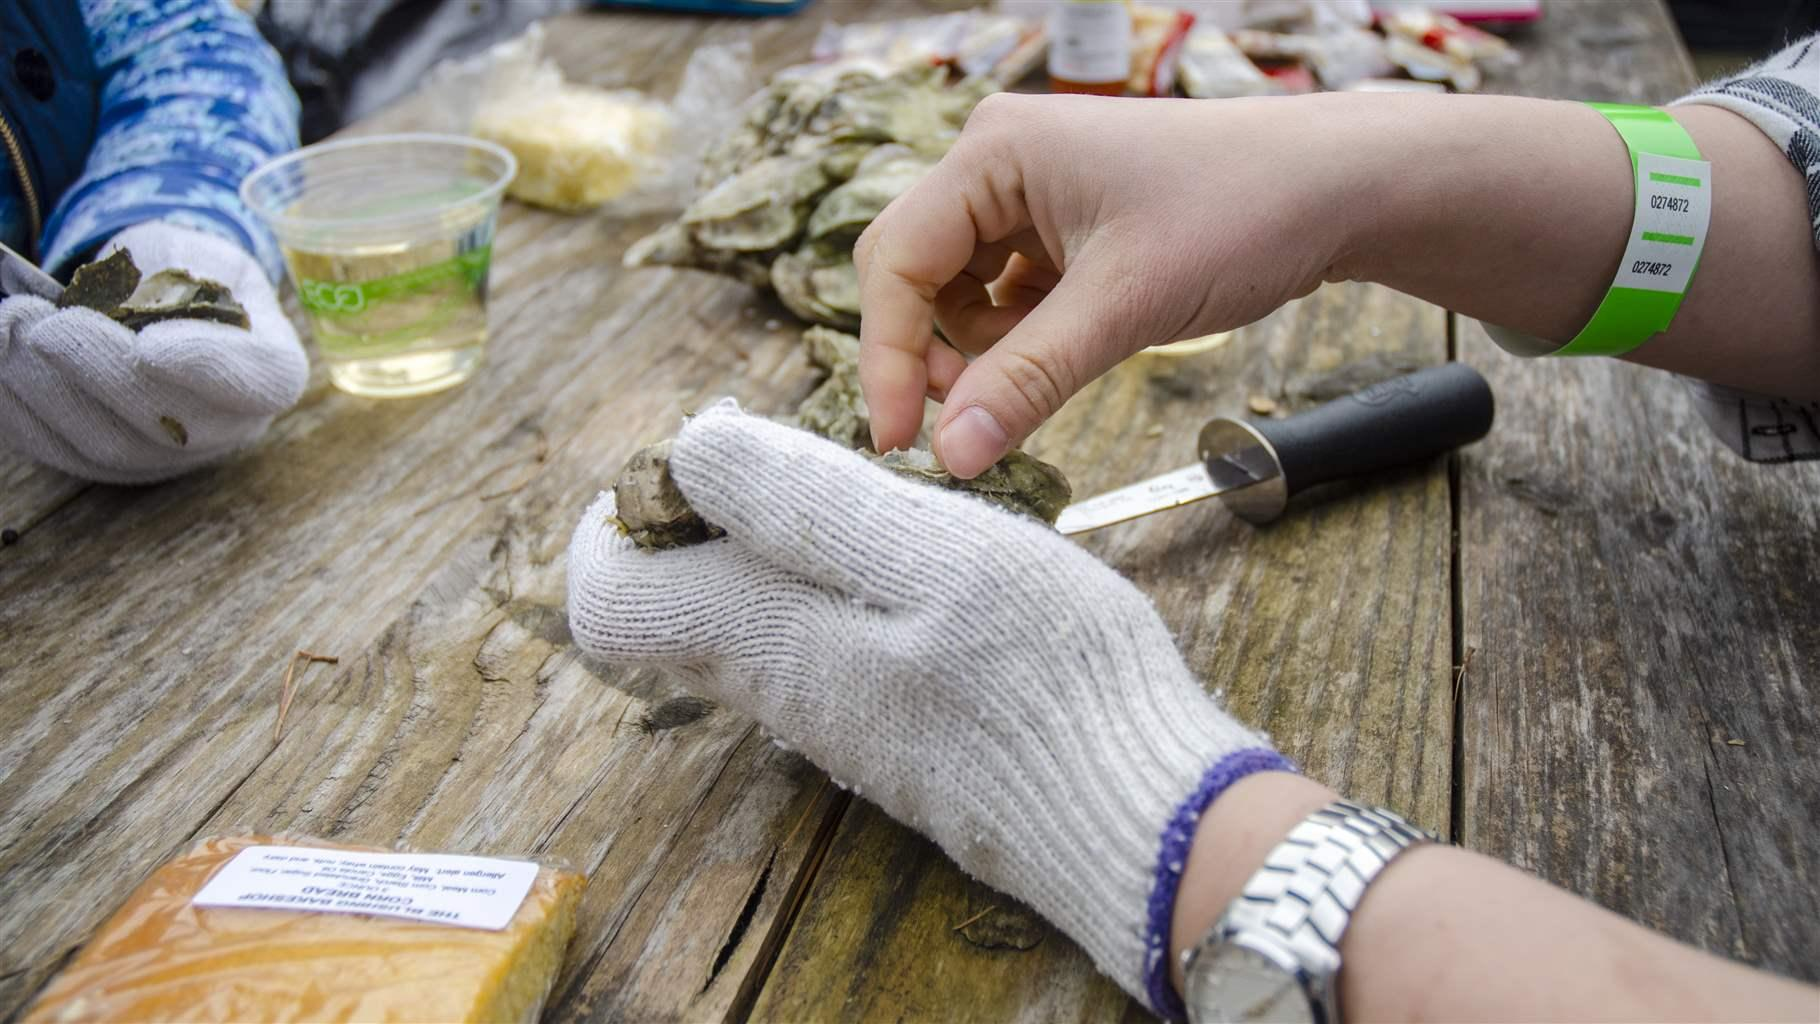 In South Carolina Oyster Shell Recycling Helps Rebuild Reefs With Many Benefits - The Pew Charitable Trusts